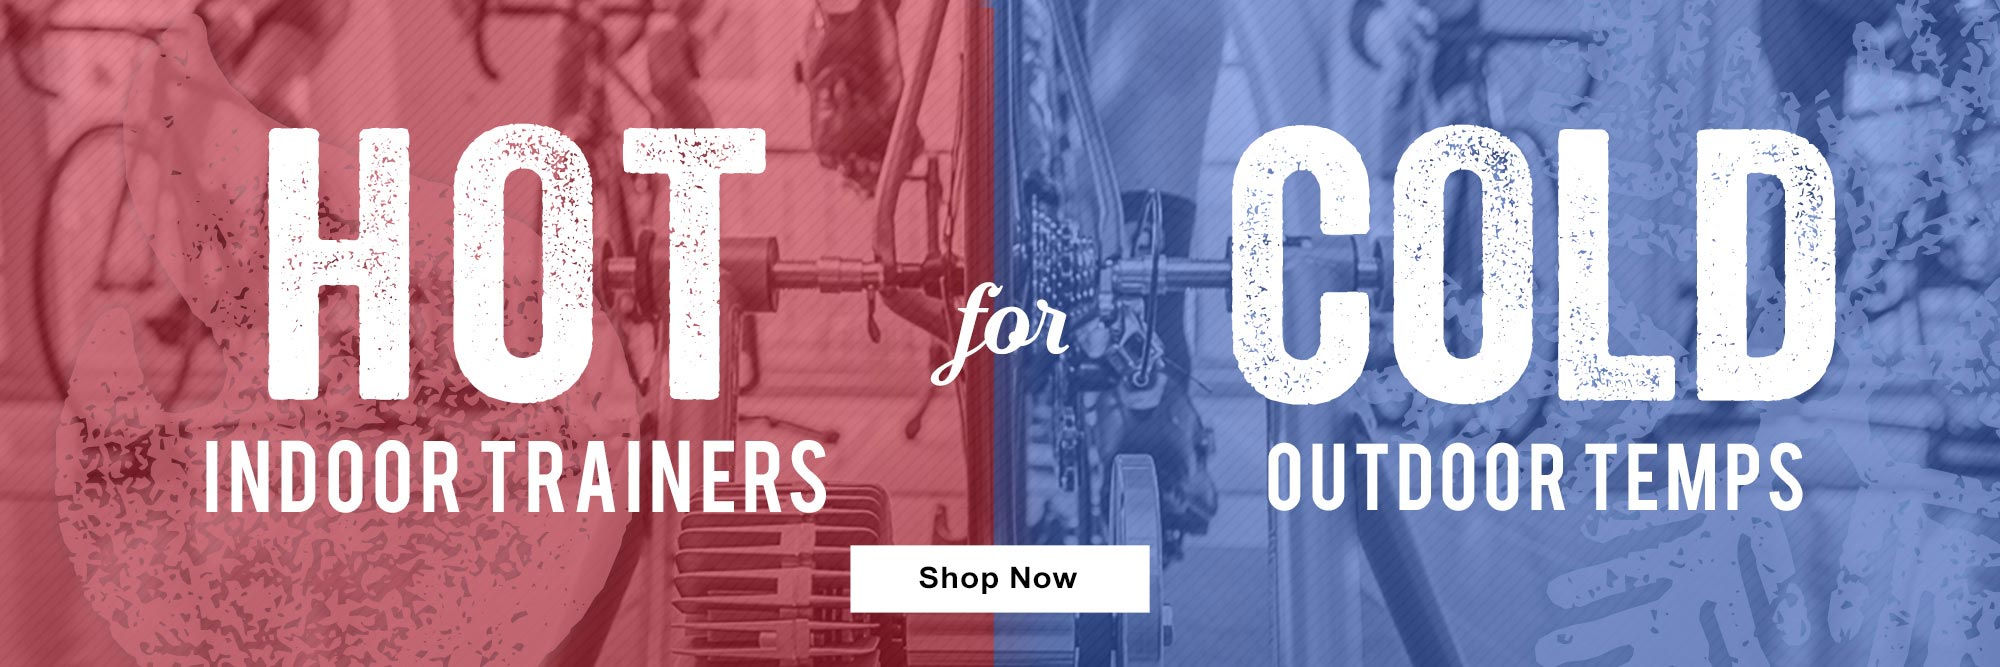 Ride your bike this winter. Not your couch. Shop indoor trainers!